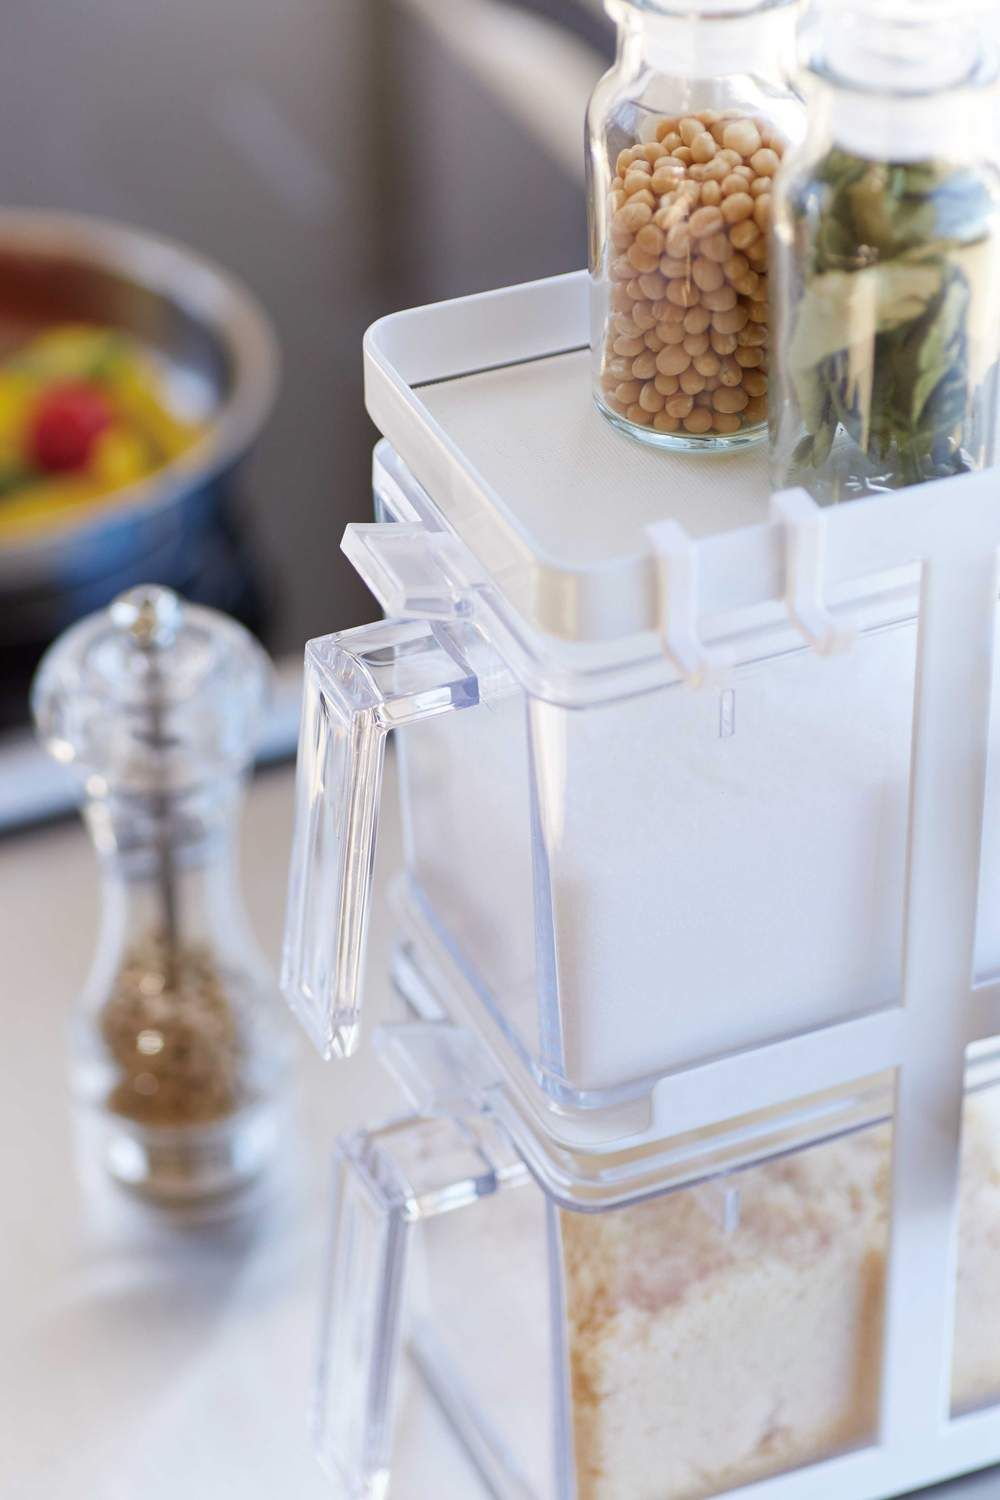 Salt And Sugar Containers With Vertical Rack 2 Containers In